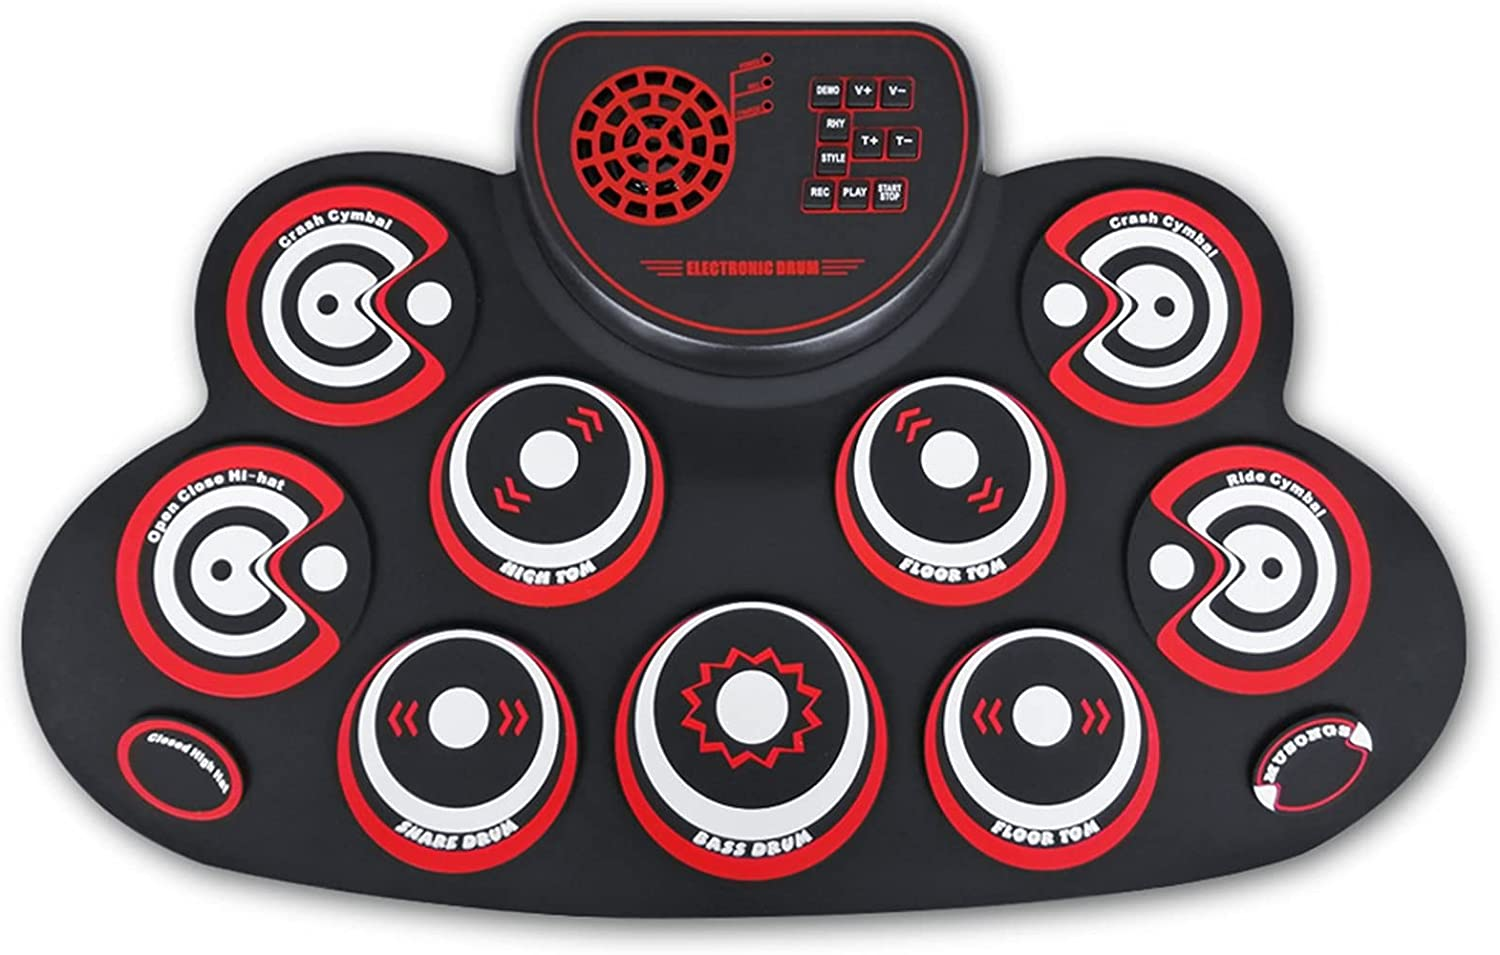 RROWER 9 Pads Electronic Drum with Selling rankings Set Headph Electric List price